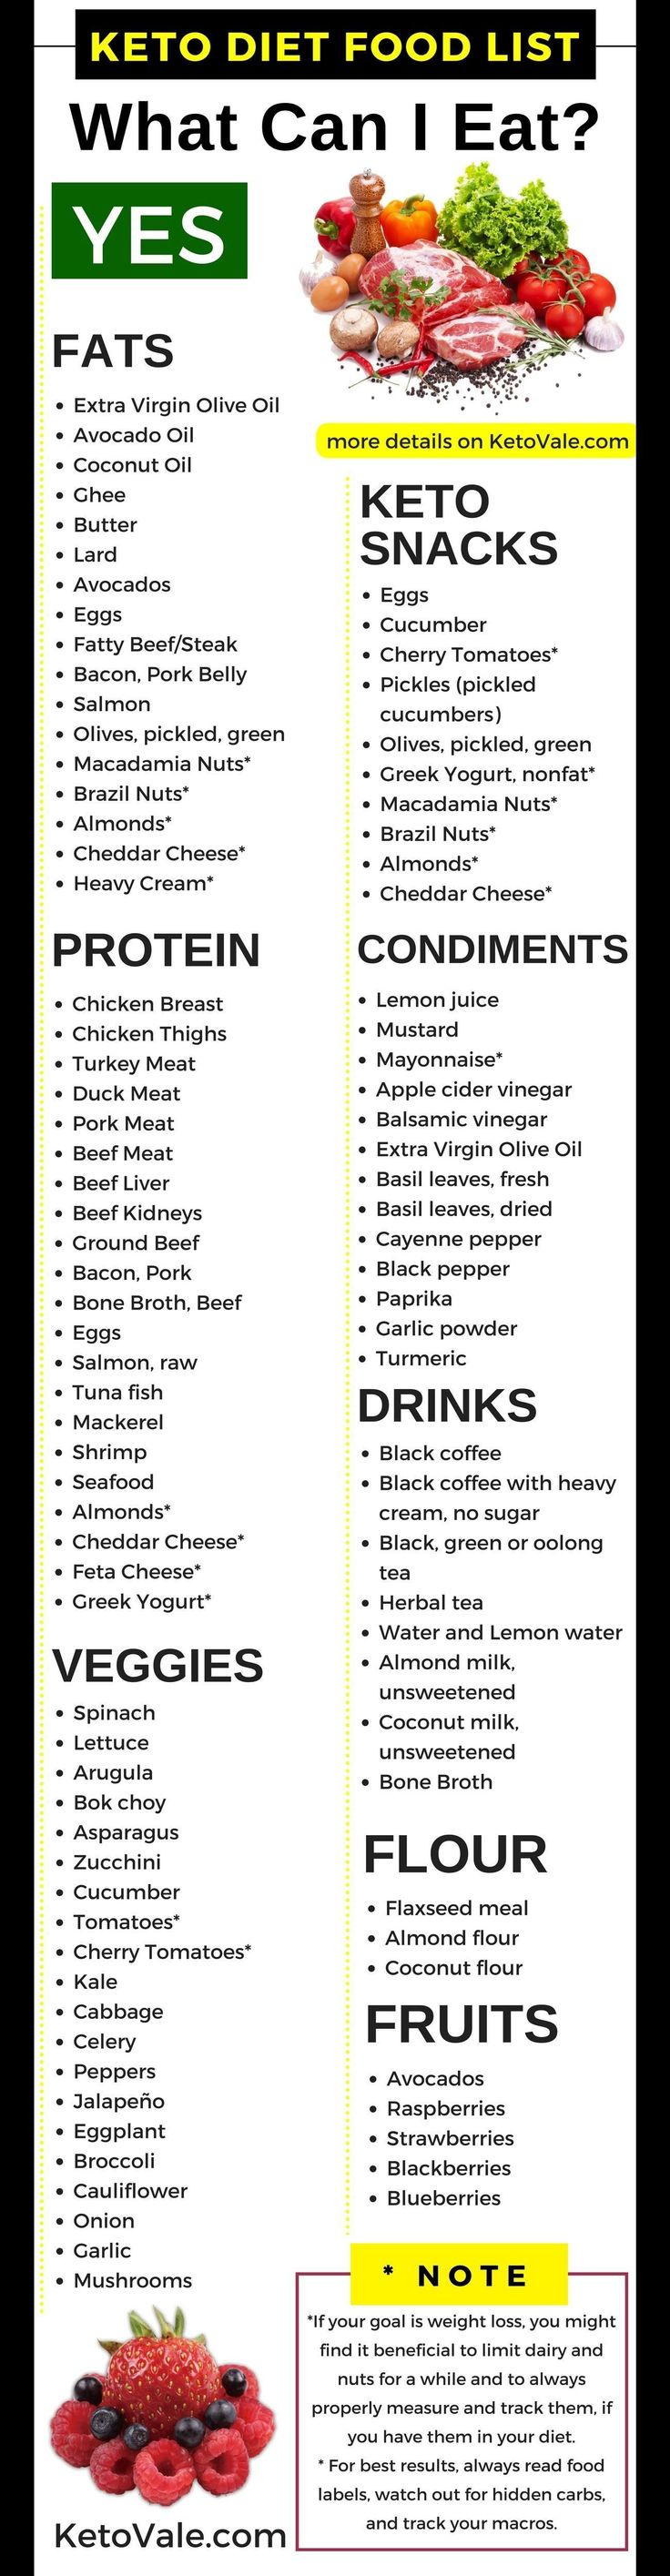 Keto Grocery Shopping List - Complete Food List of what you can eat on ketogenic diet! #ketogenicdietfoodlist